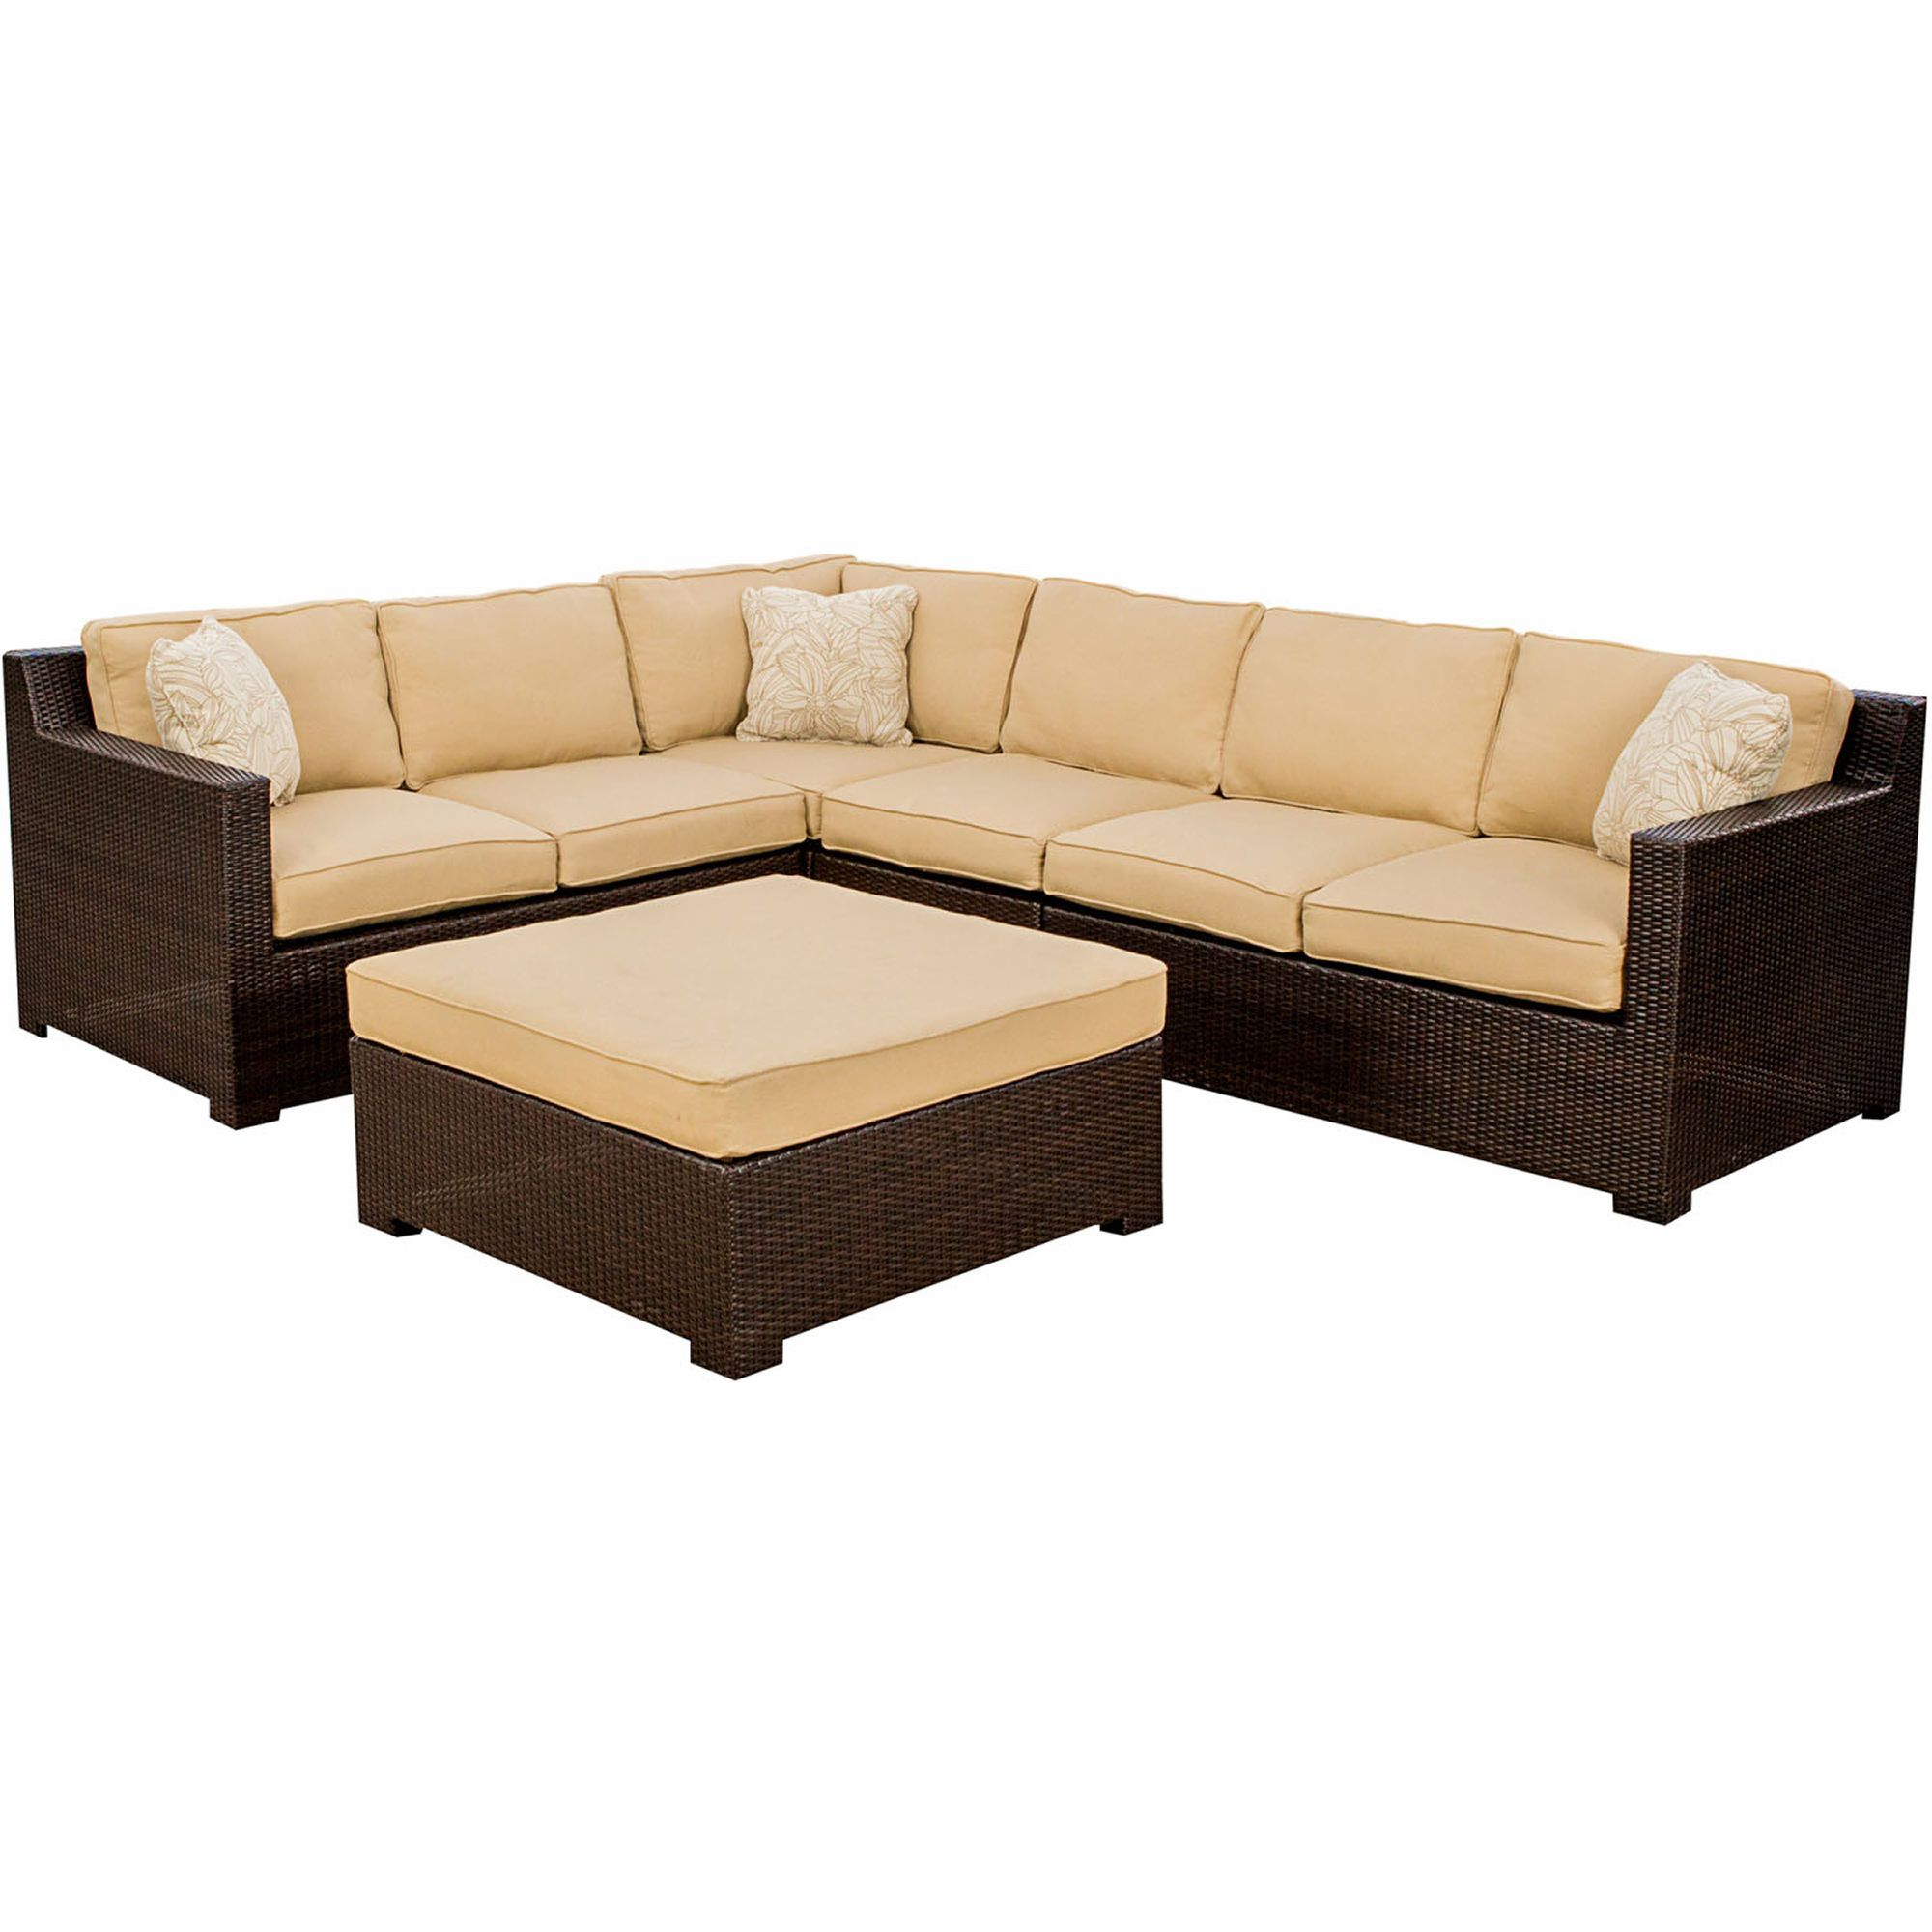 Hanover metropolitan piece sectional set bjs wholesale club